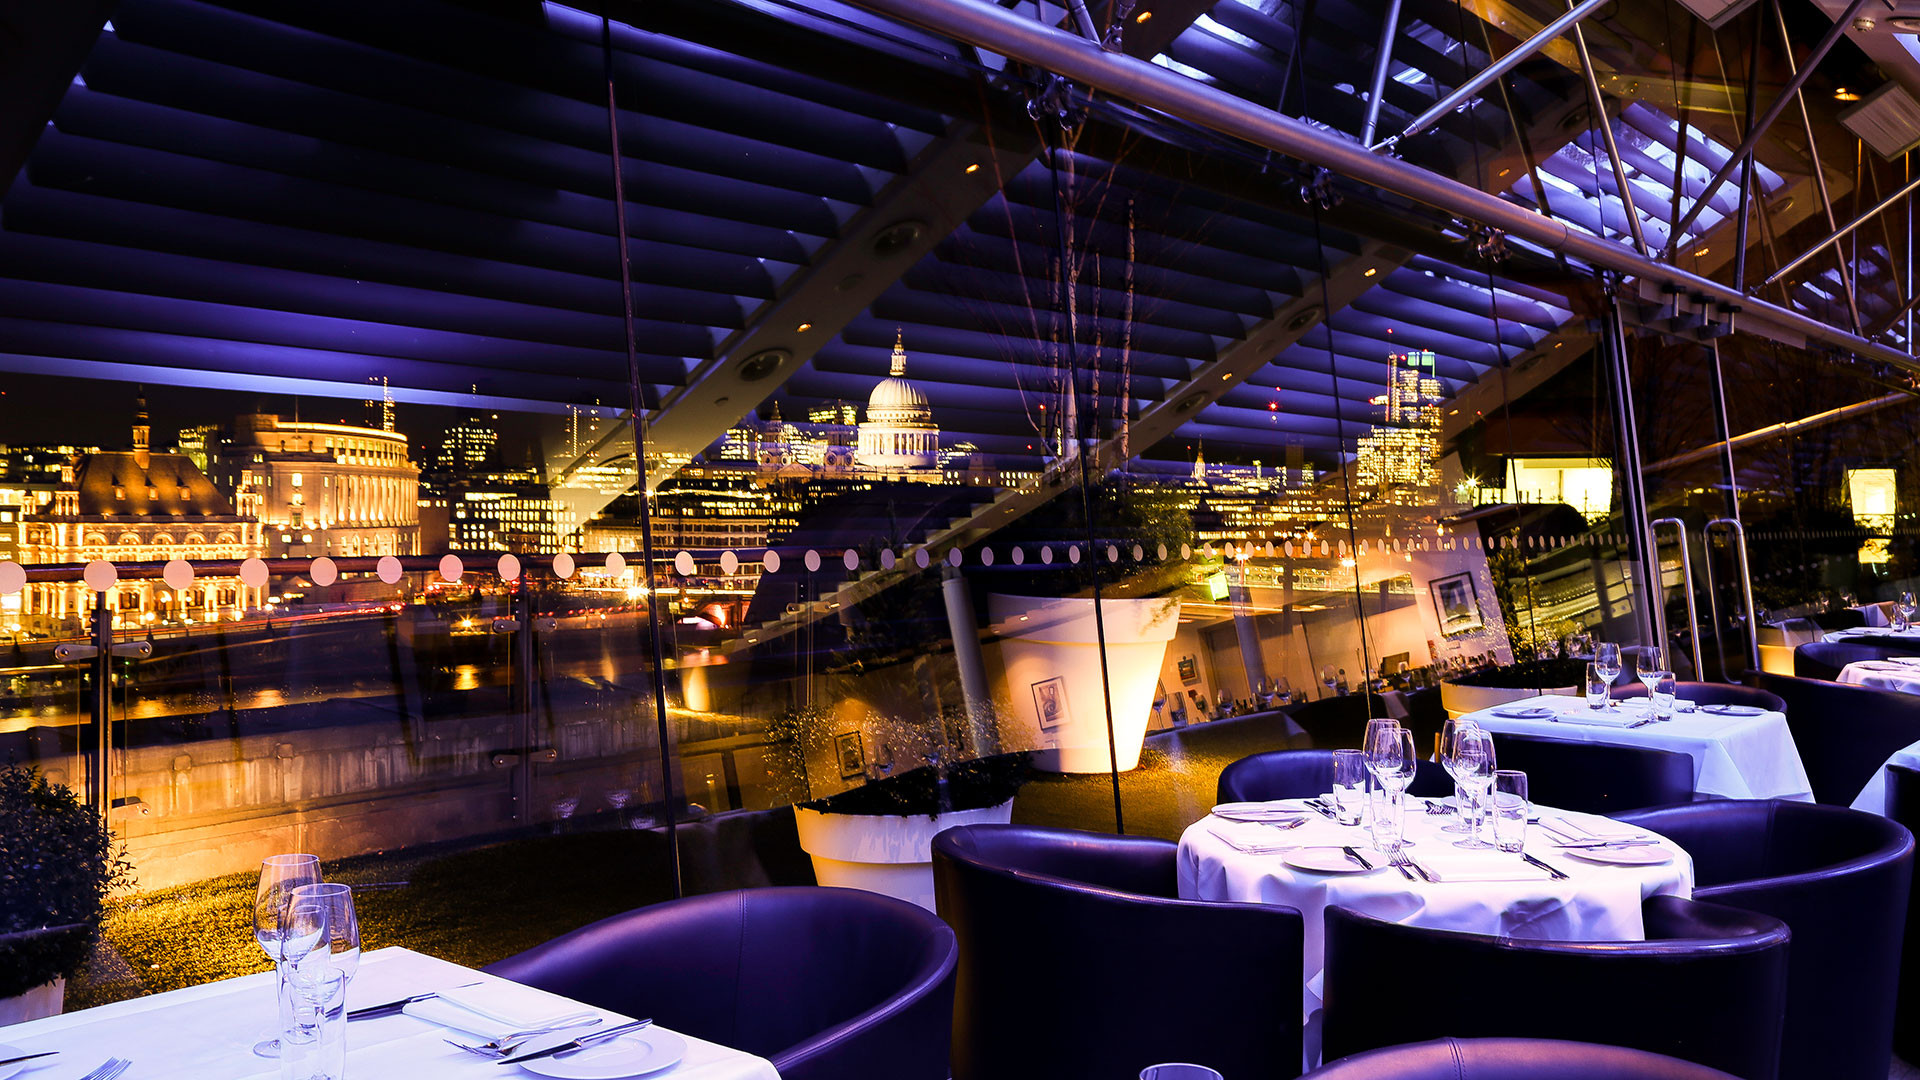 OXO Tower is one of the restaurants working with StreetSmart